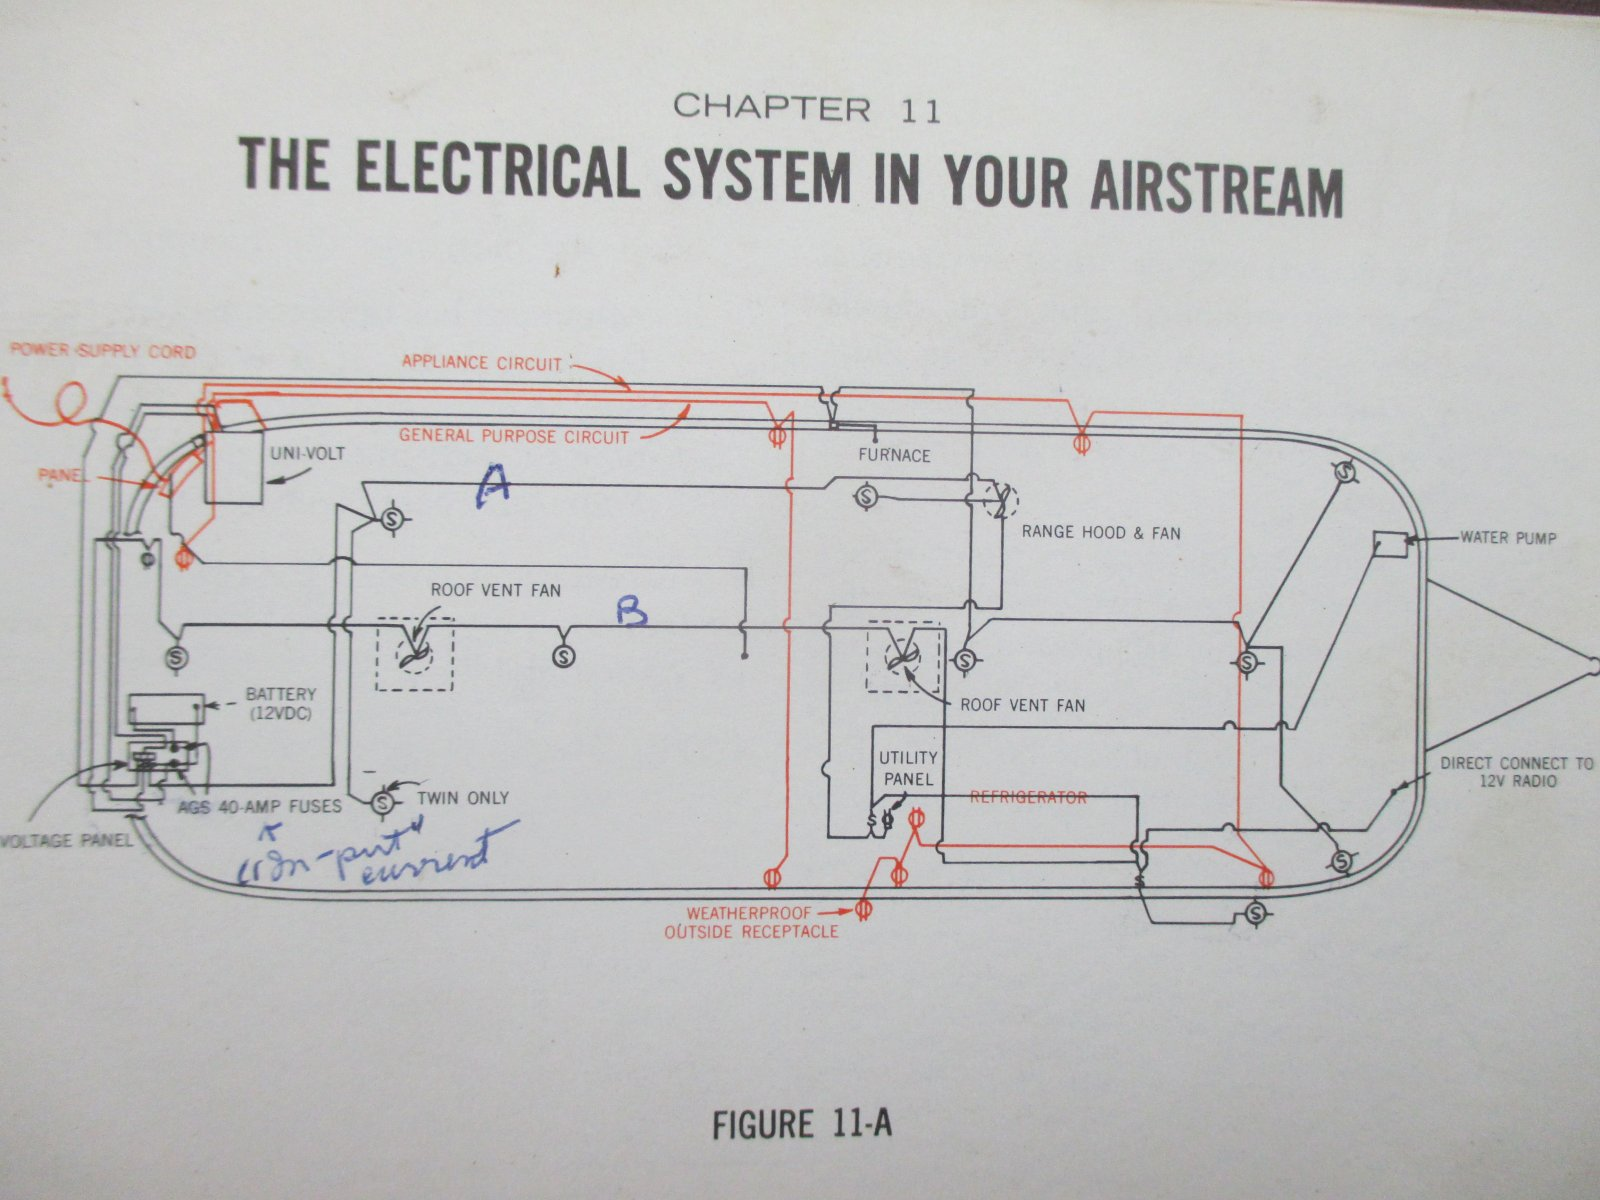 Complete rewire-where do I start ? - Airstream Forums on vintage trailer horn, vintage travel trailer brakes, vintage travel trailer wiring, vintage trailer repair, usa trailer diagram, trailer electrical connectors diagram, vintage trailer accessories, vintage trailer springs, vintage electrical diagram, vintage trailer wheels, vintage trailer cover, vintage trailer dimensions, vintage trailer electrical, vintage trailer heater, vintage trailer lighting, vintage trailer plug wiring, vintage trailer interiors, vintage trailer frame,